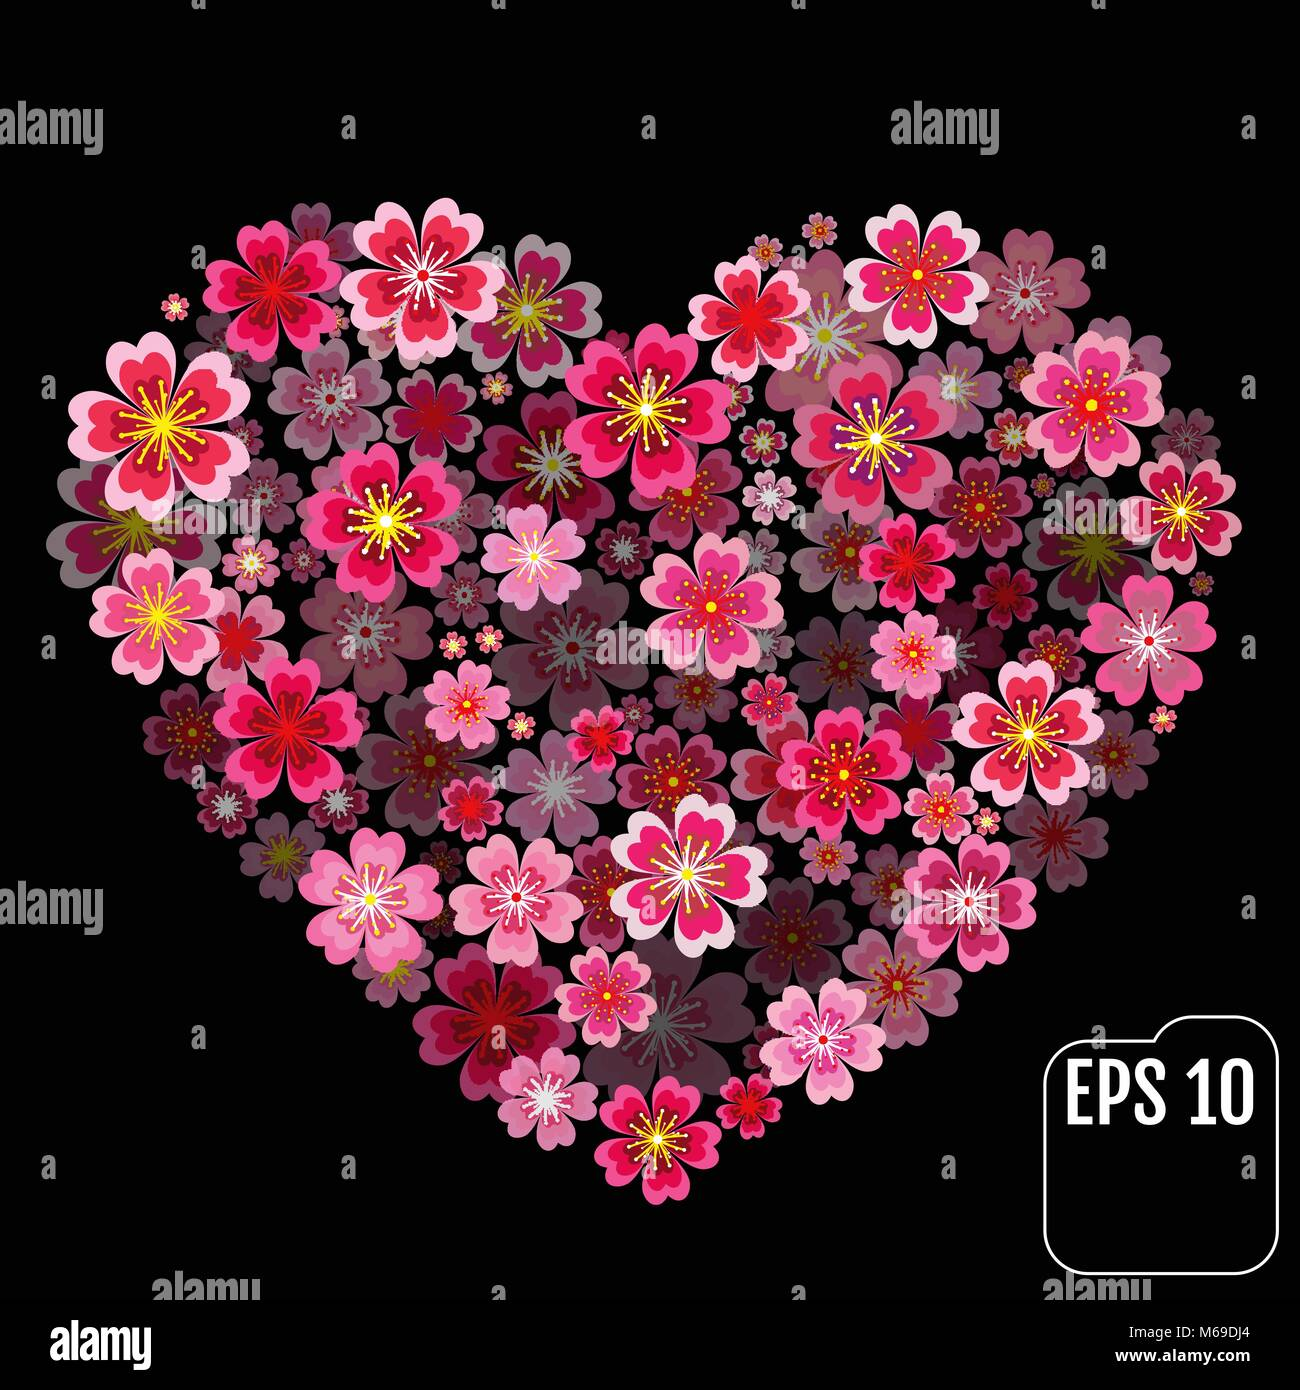 3d effect Spring flowers heart floral collage concept - Stock Vector